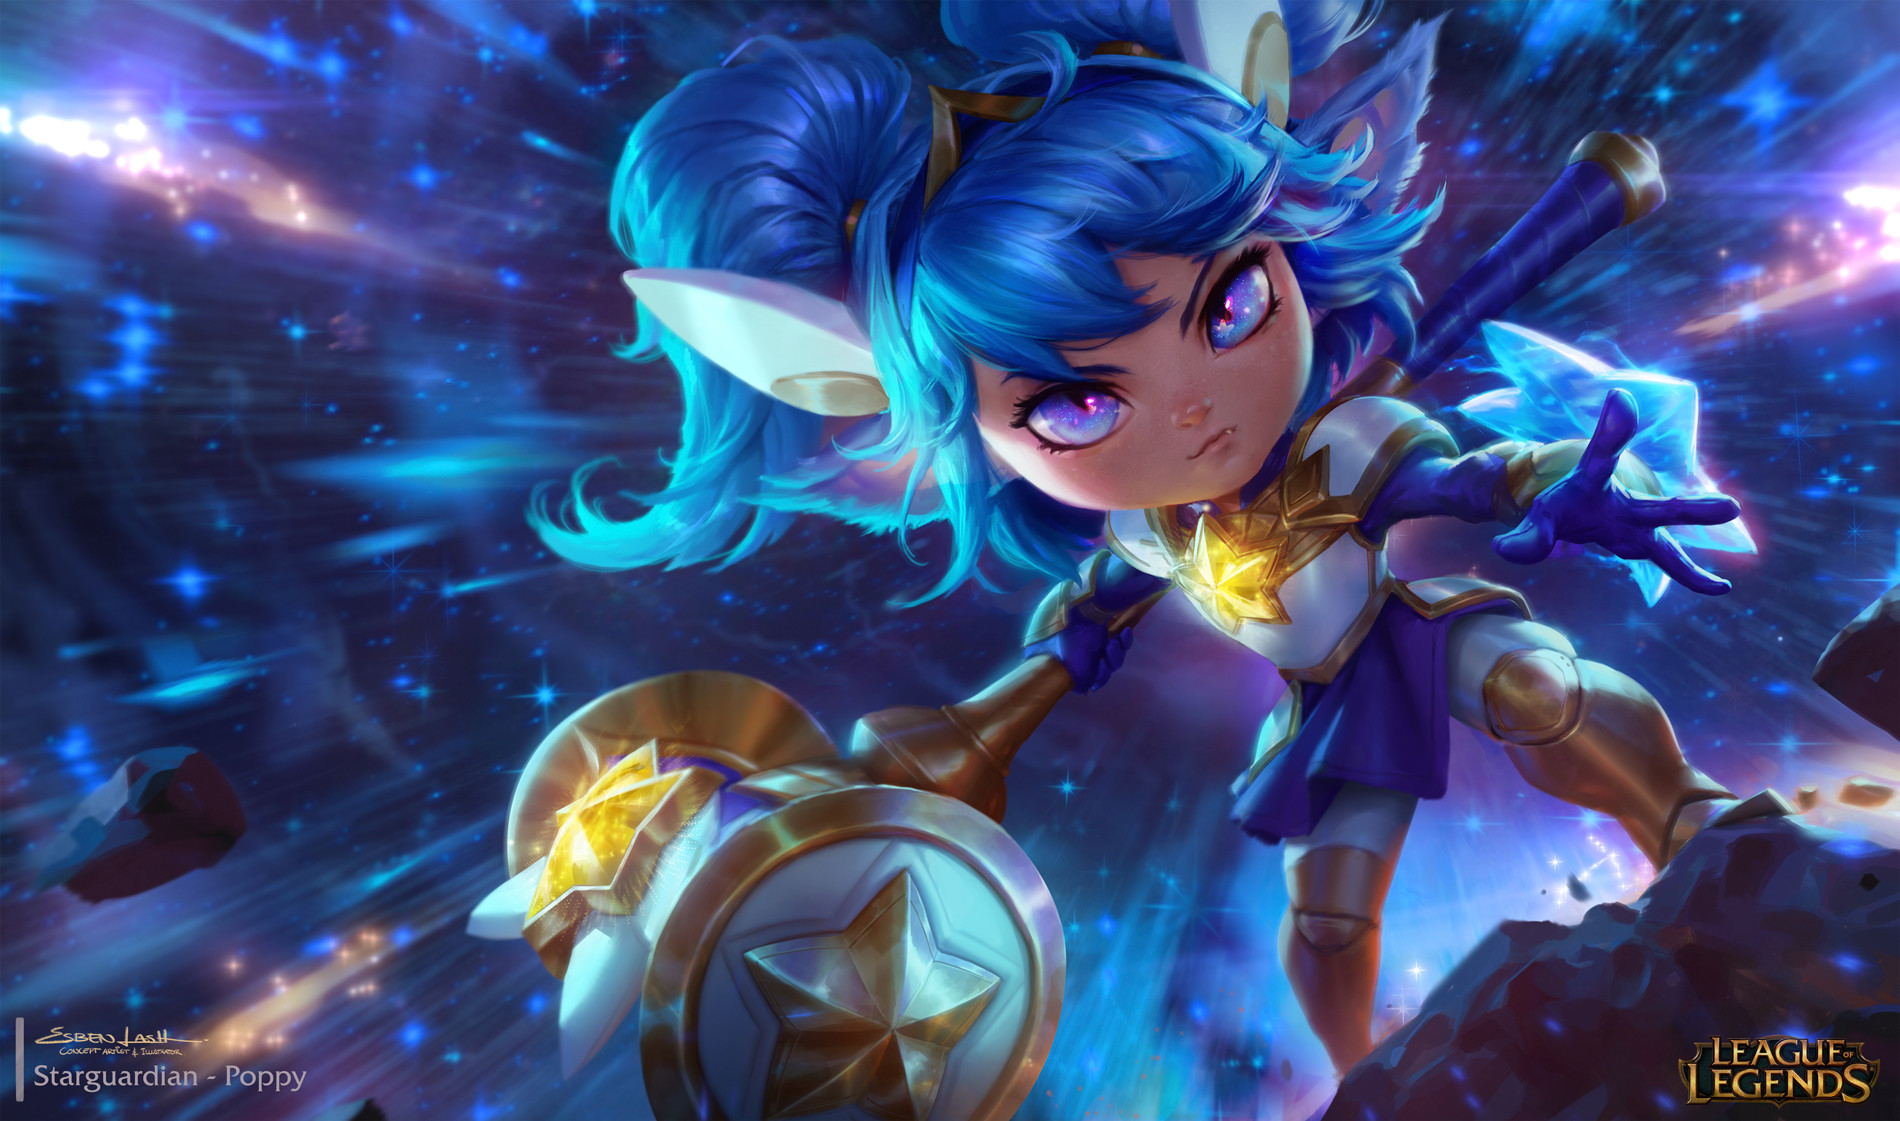 Artstation Star Guardian Poppy Esben Lash Rasmussen